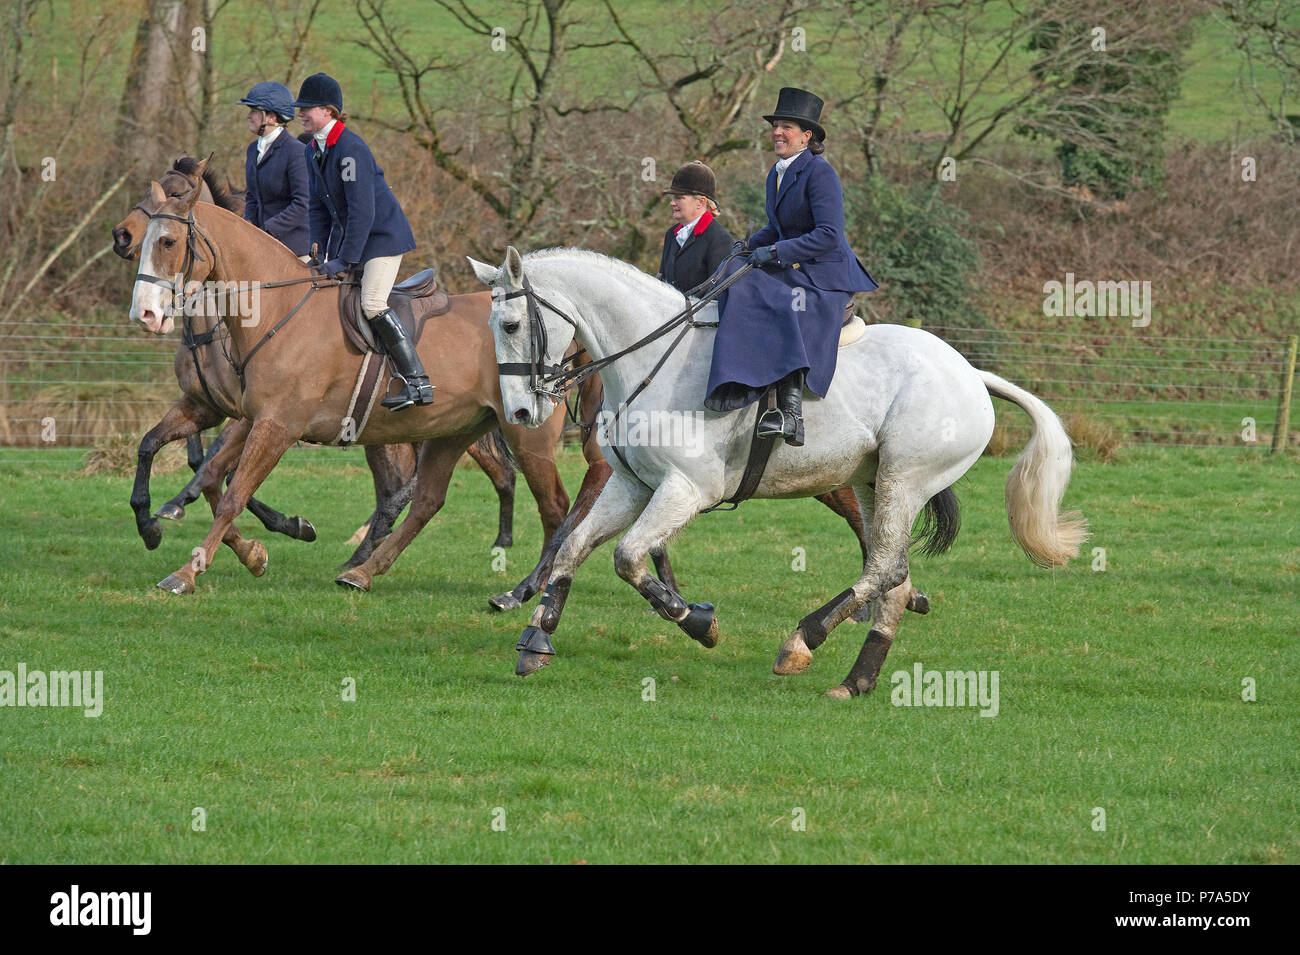 67952bb79d53 Riding Habit Stock Photos   Riding Habit Stock Images - Alamy